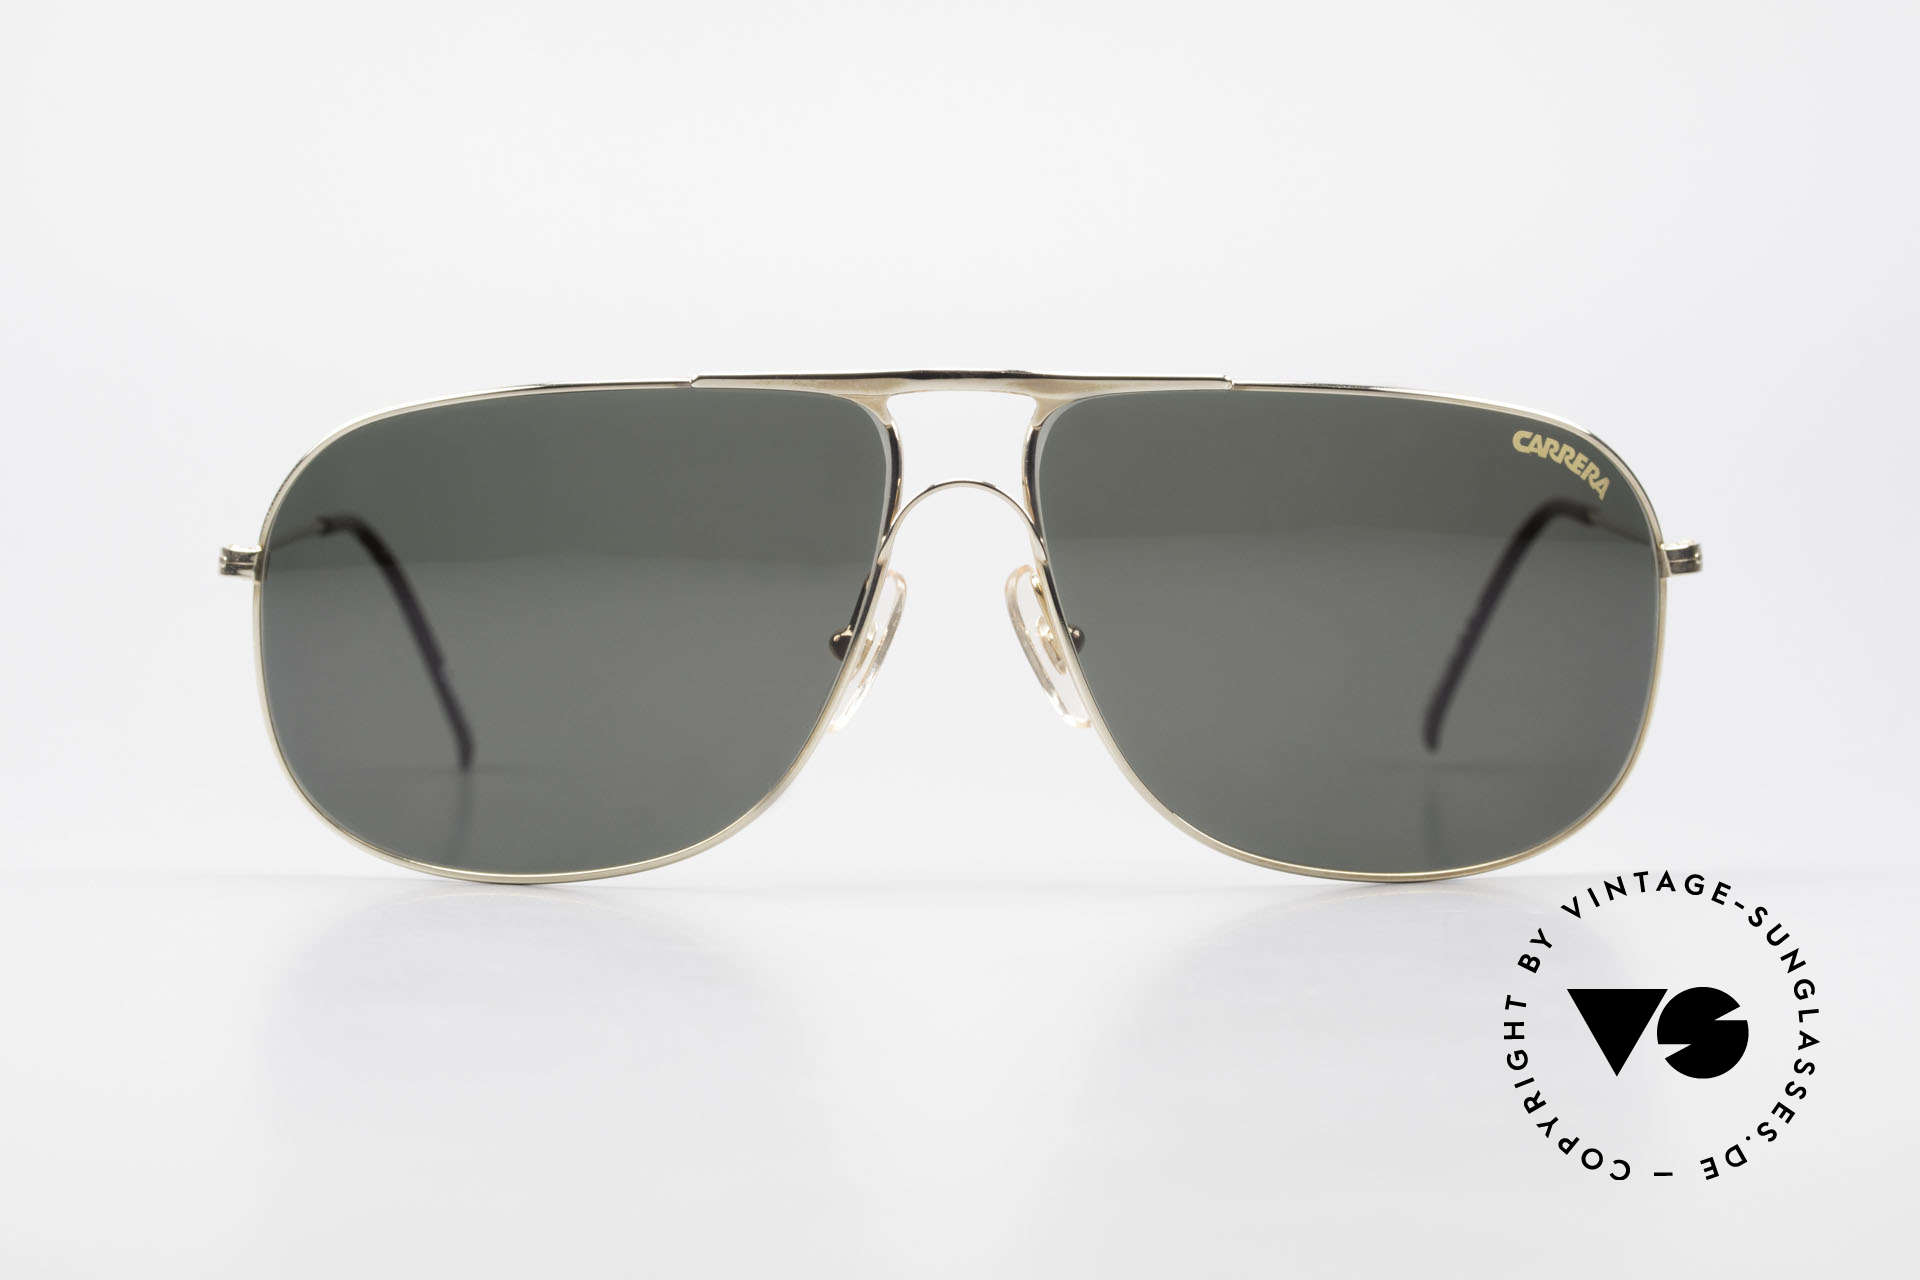 Carrera 5422 Shades With 3 Sets of Lenses, model 5422, Sport Performance, in LARGE size 66/12, Made for Men